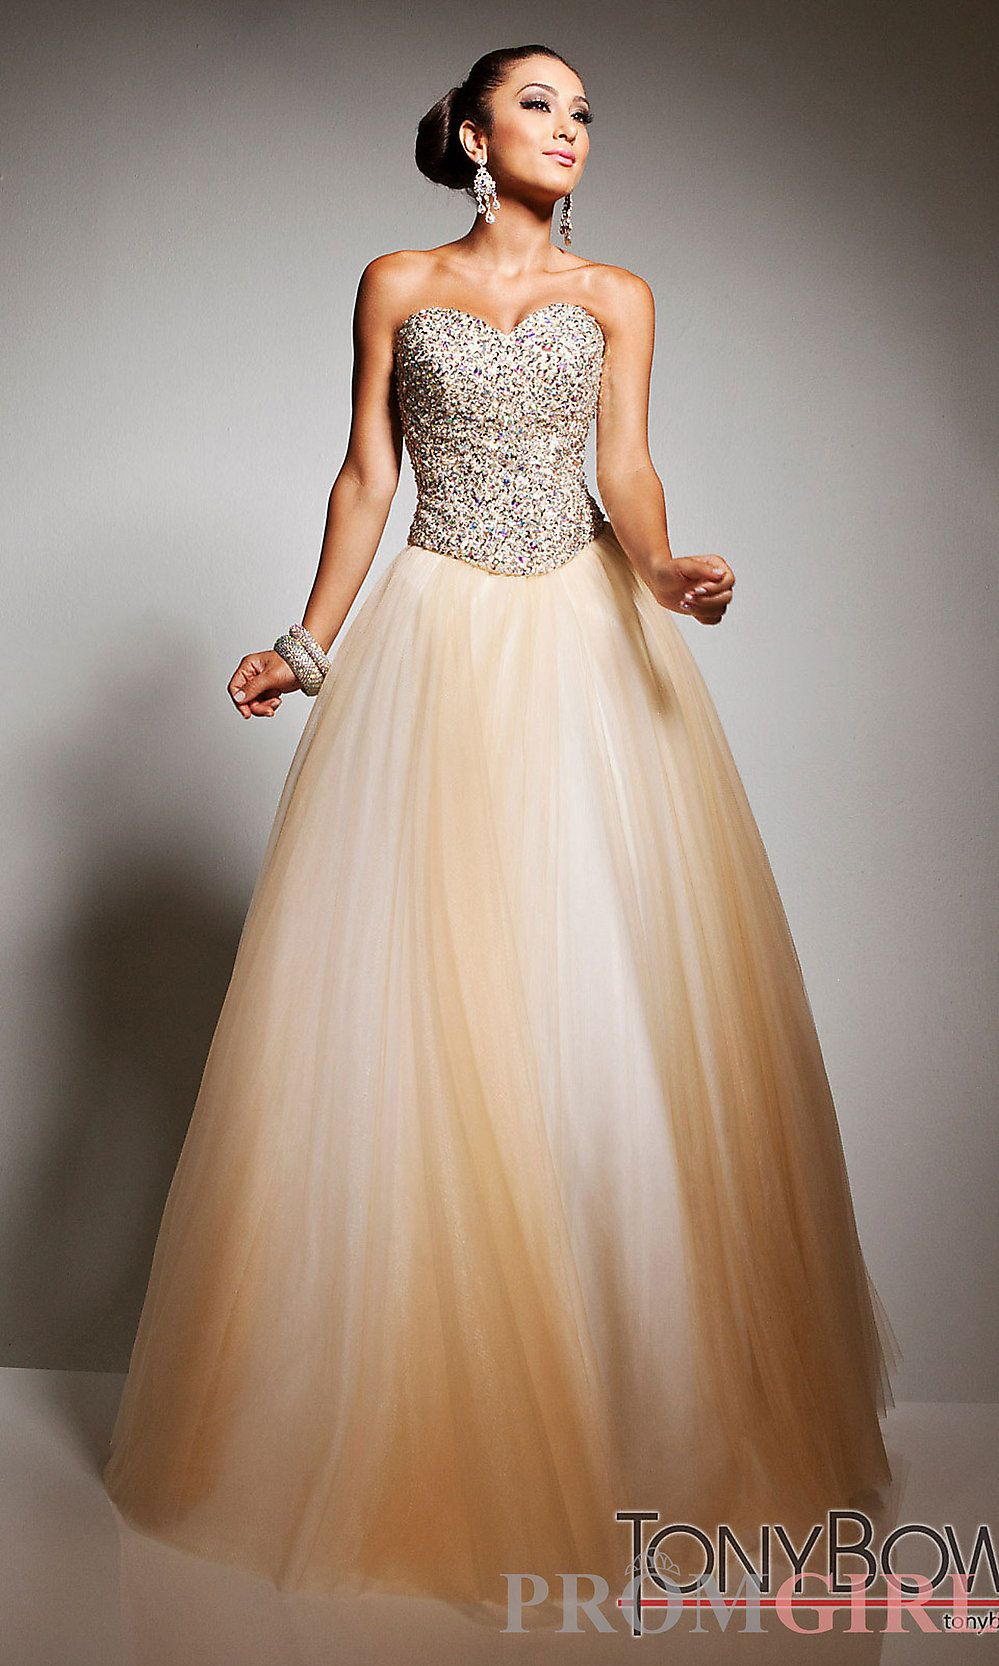 Strapless Gold Ball Gown by Tony Bowls | Ball gowns, Prom and Gowns